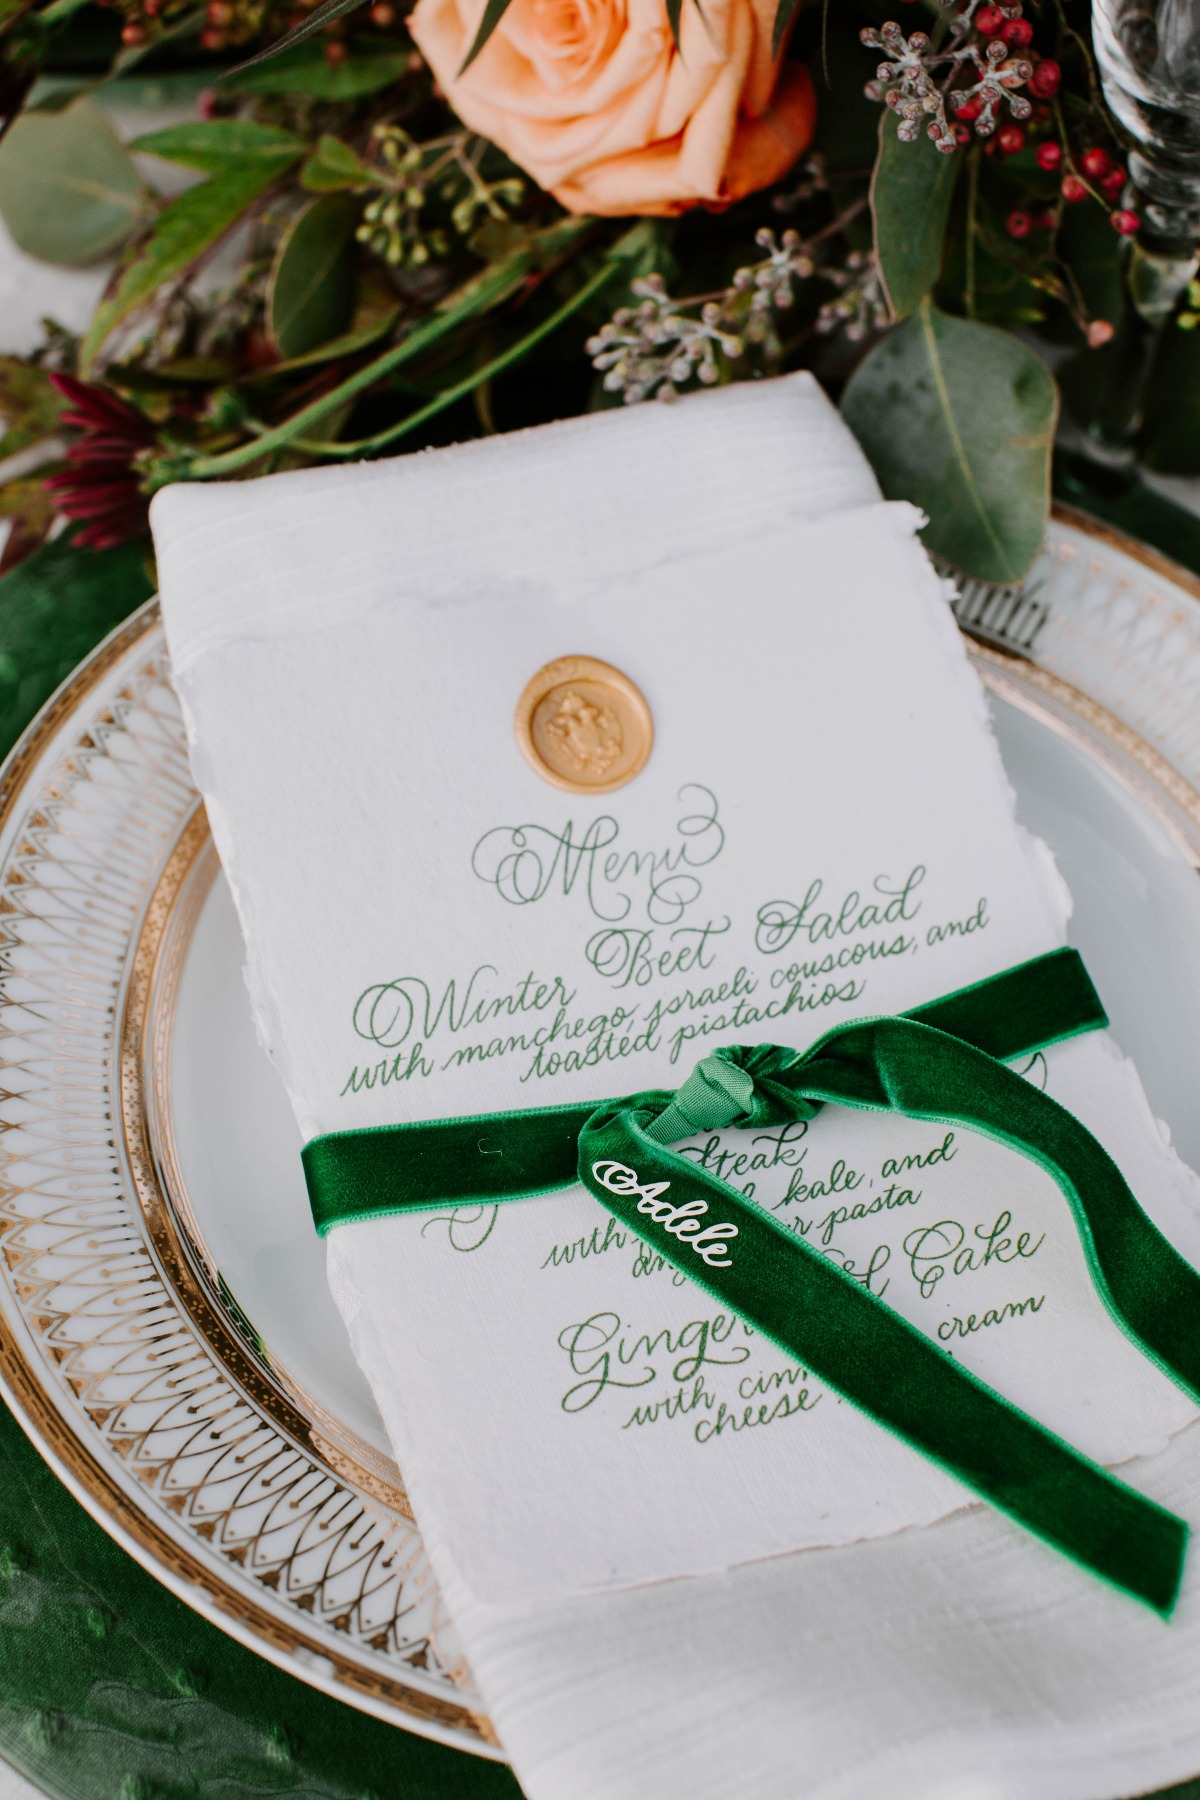 Emerald green and gold place setting for a wedding